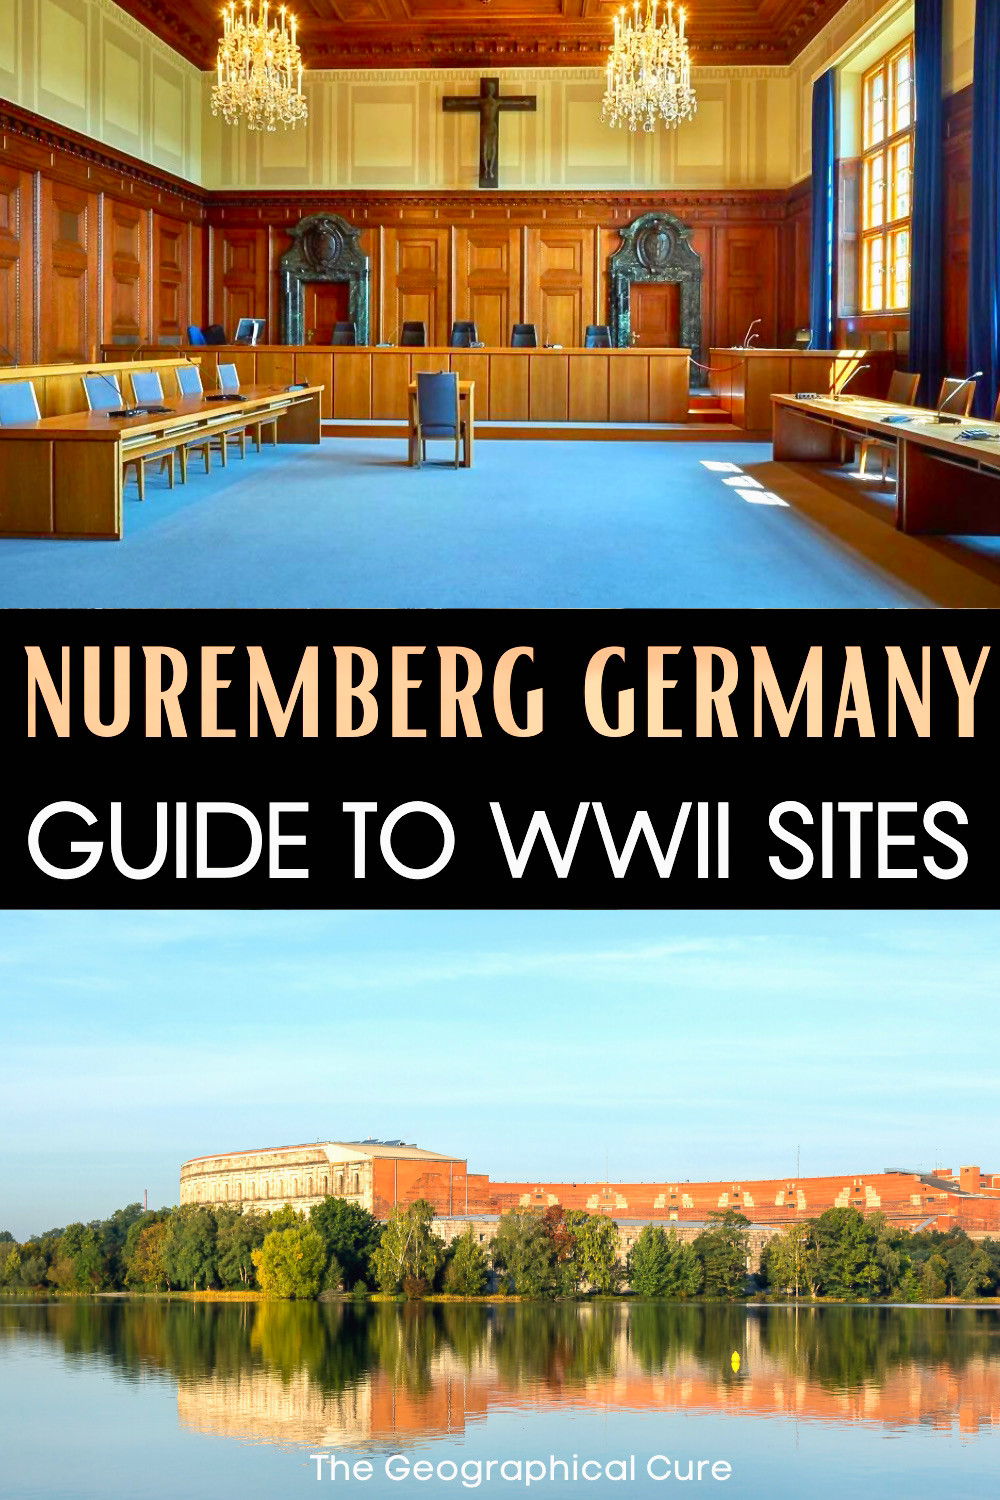 ultyilmmate guide to the historic Nazi and WWII sites in Nuremberg Germany